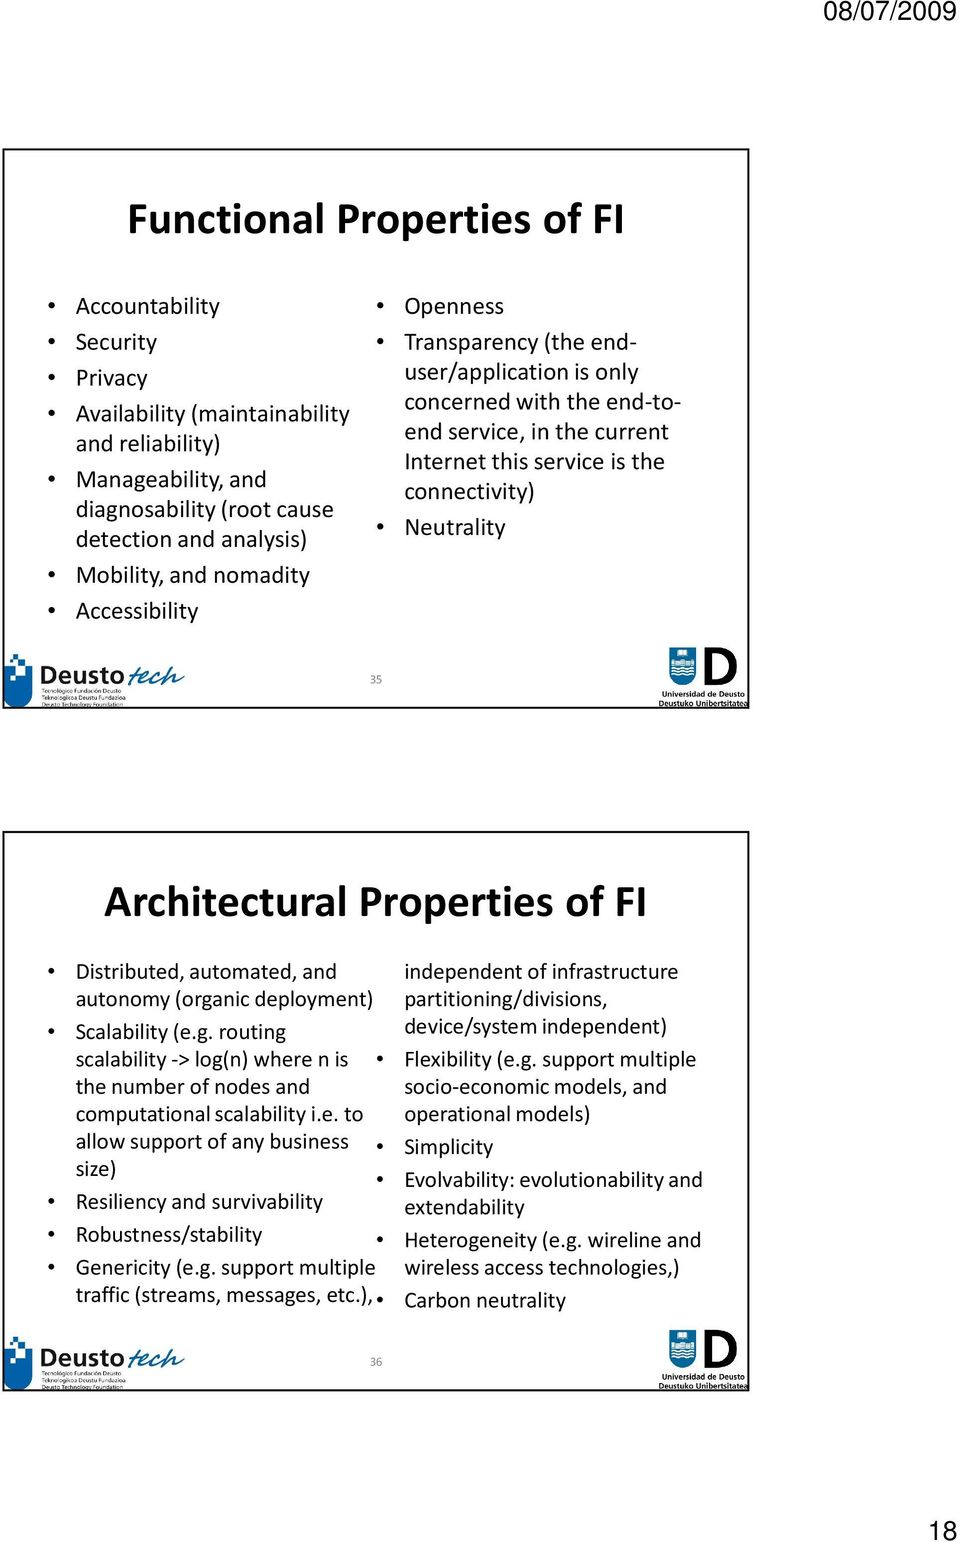 Properties of FI Distributed, automated, and autonomy (organic deployment) Scalability (e.g. routing scalability -> log(n) where n is the number of nodes and computational scalability i.e. to allow support of any business size) Resiliency and survivability Robustness/stability independent of infrastructure partitioning/divisions, device/system independent) Flexibility (e.